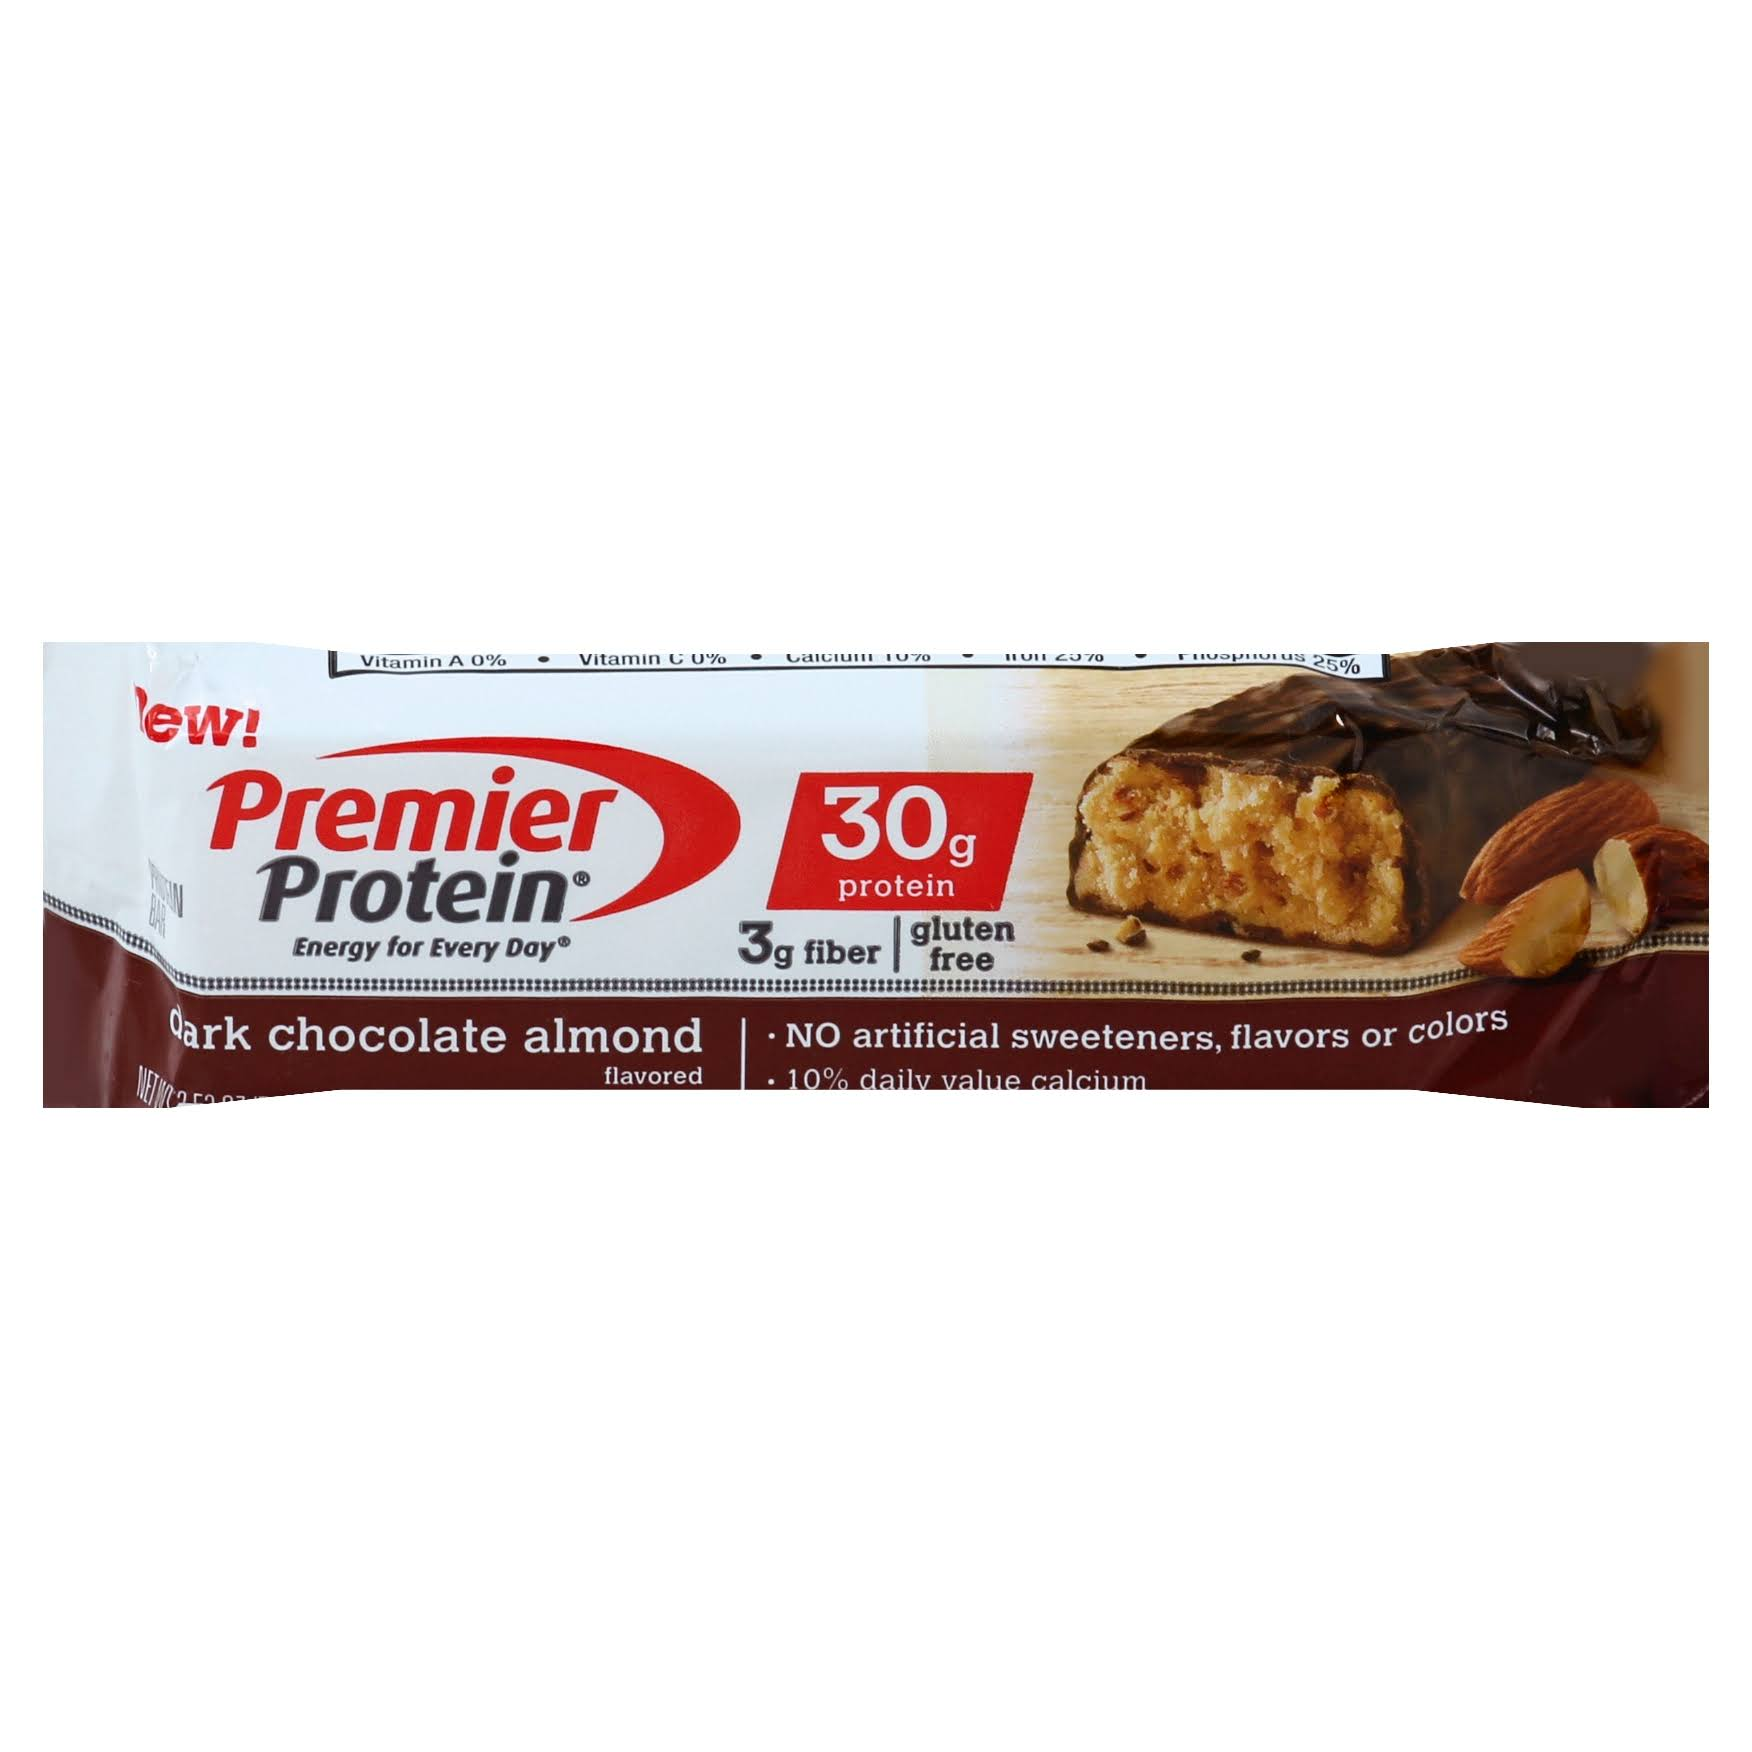 Premier Protein Protein Bar, Dark Chocolate Almond Flavored - 2.53 oz